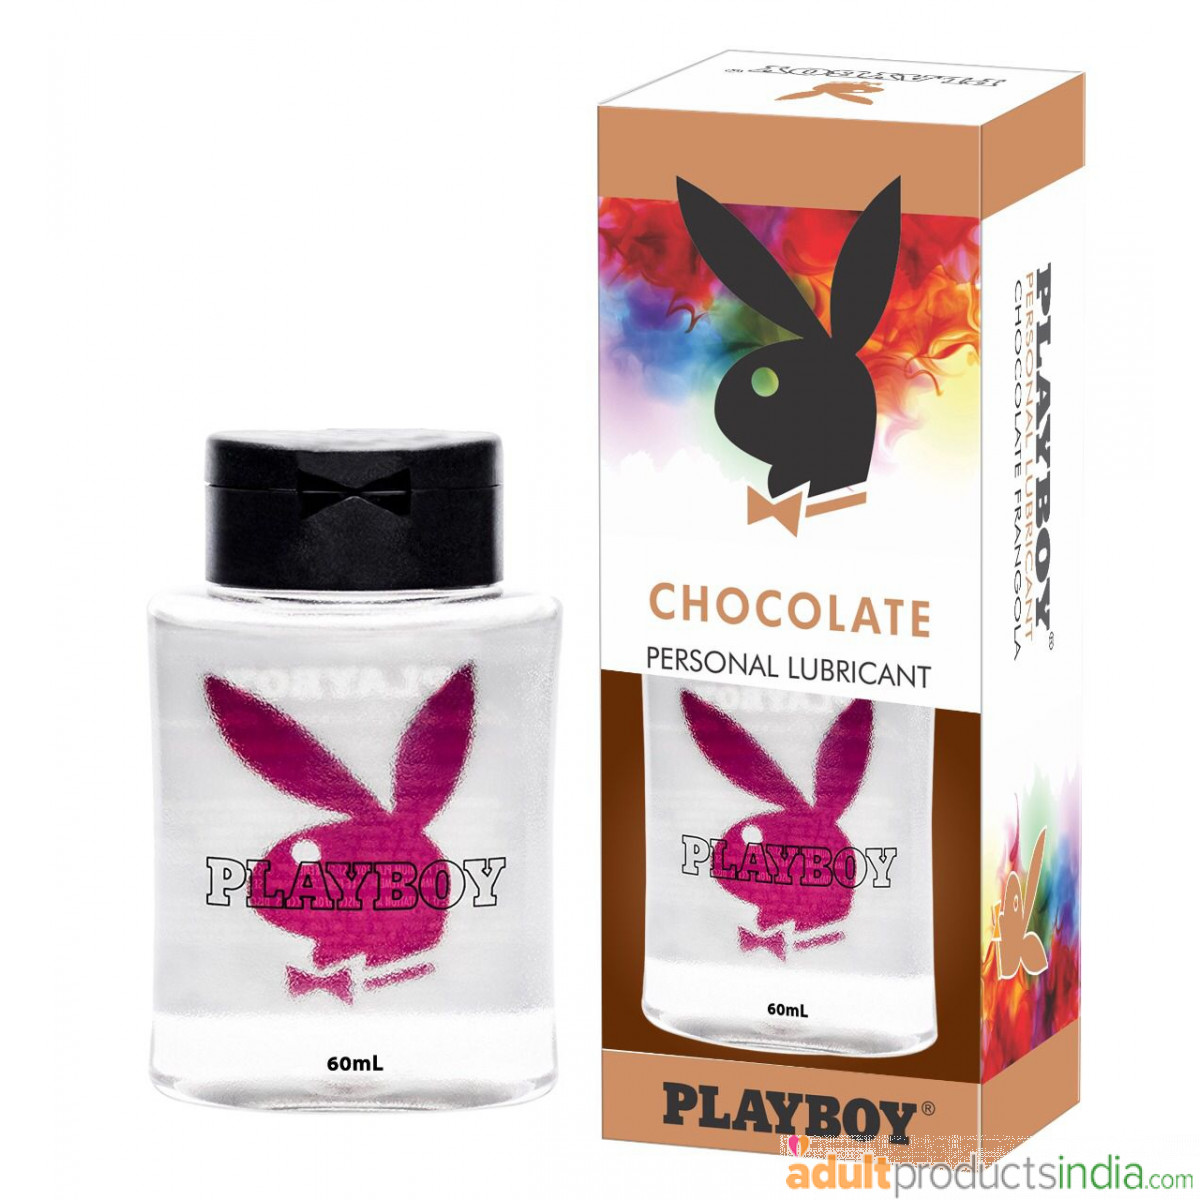 New Playboy Personal Lubricant - Chocolate